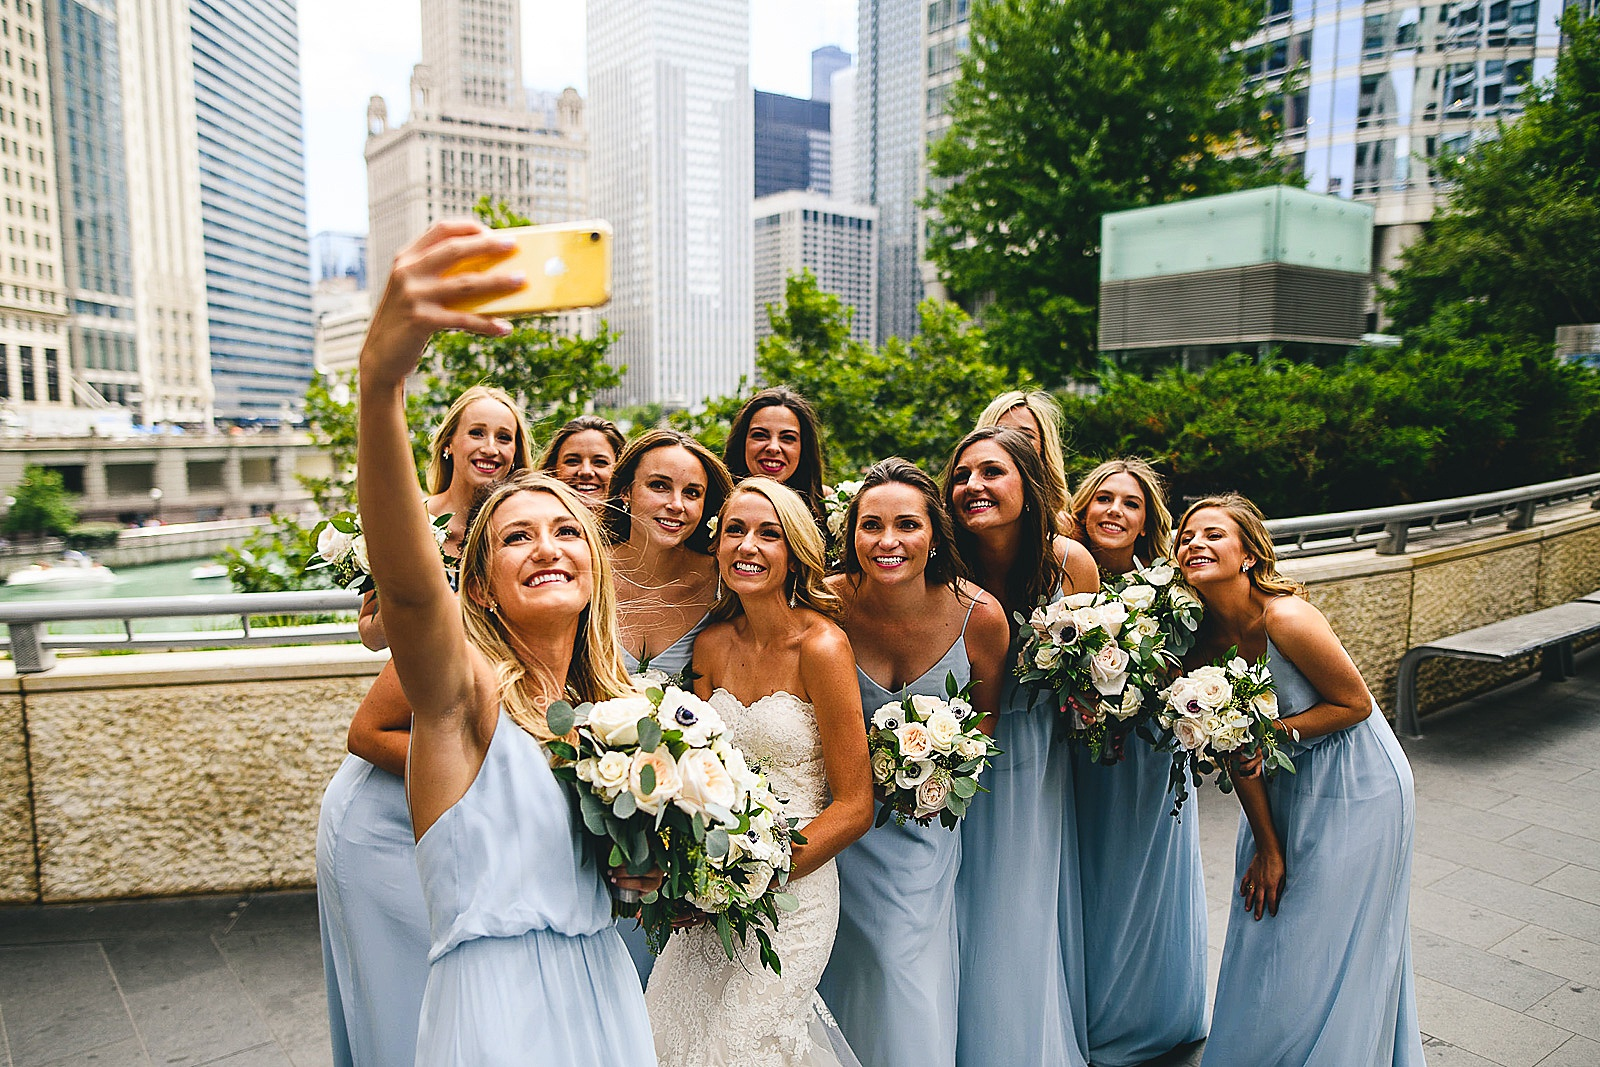 26 fun bridesmaids photos - Audrey + Jake's Beautiful Chicago Wedding at Chez